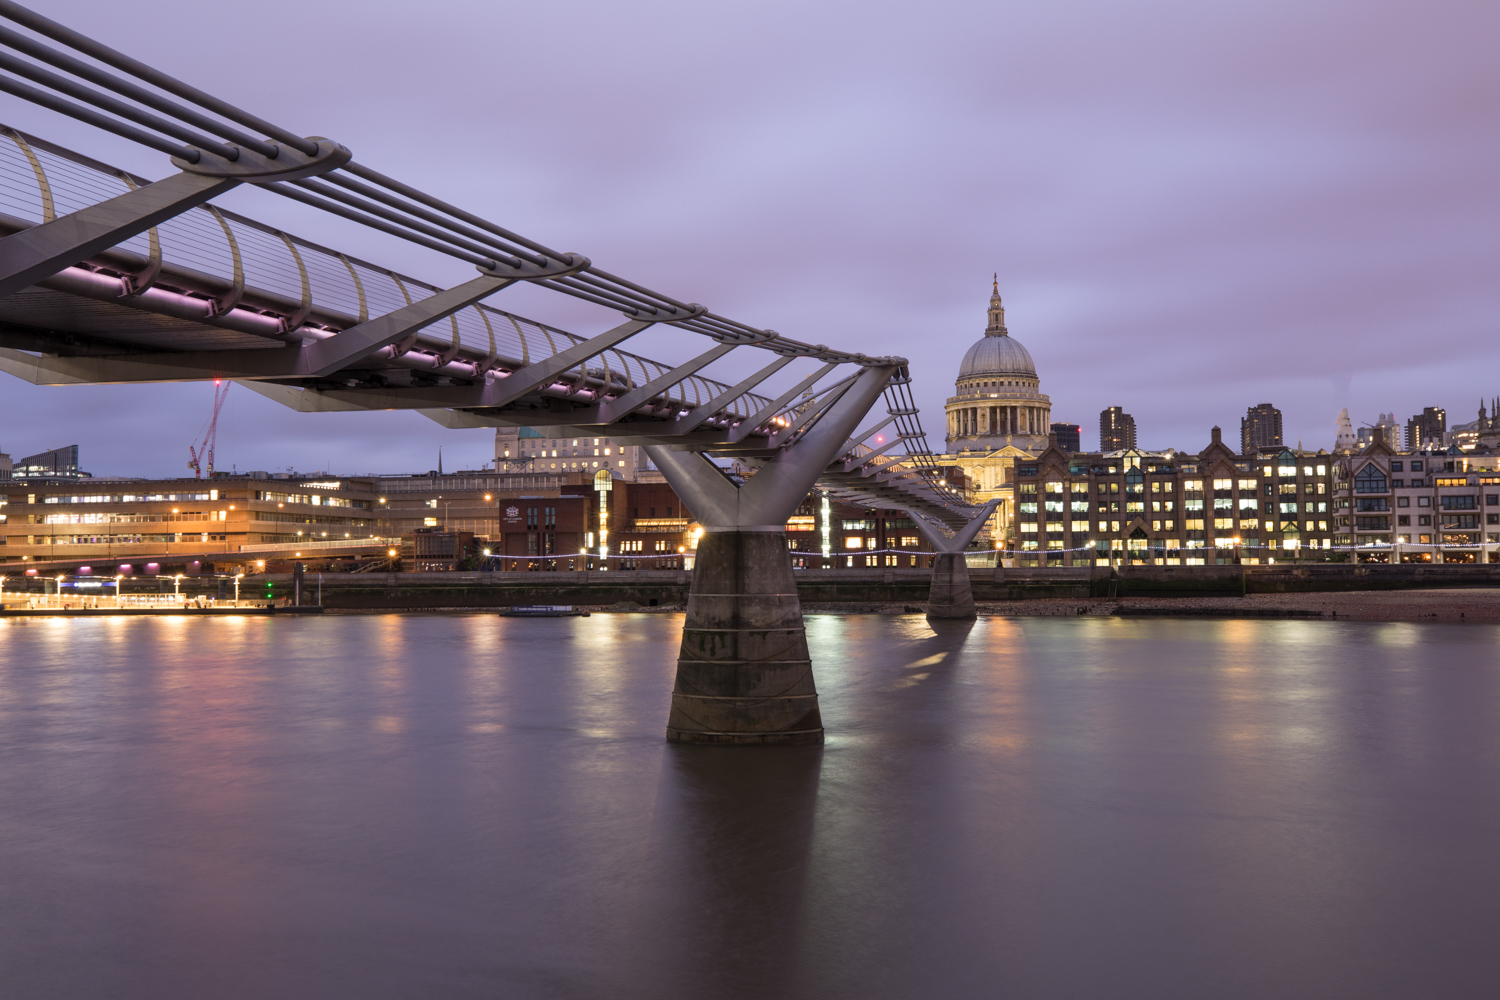 6 Tips For Photographing Better City Scenes 3